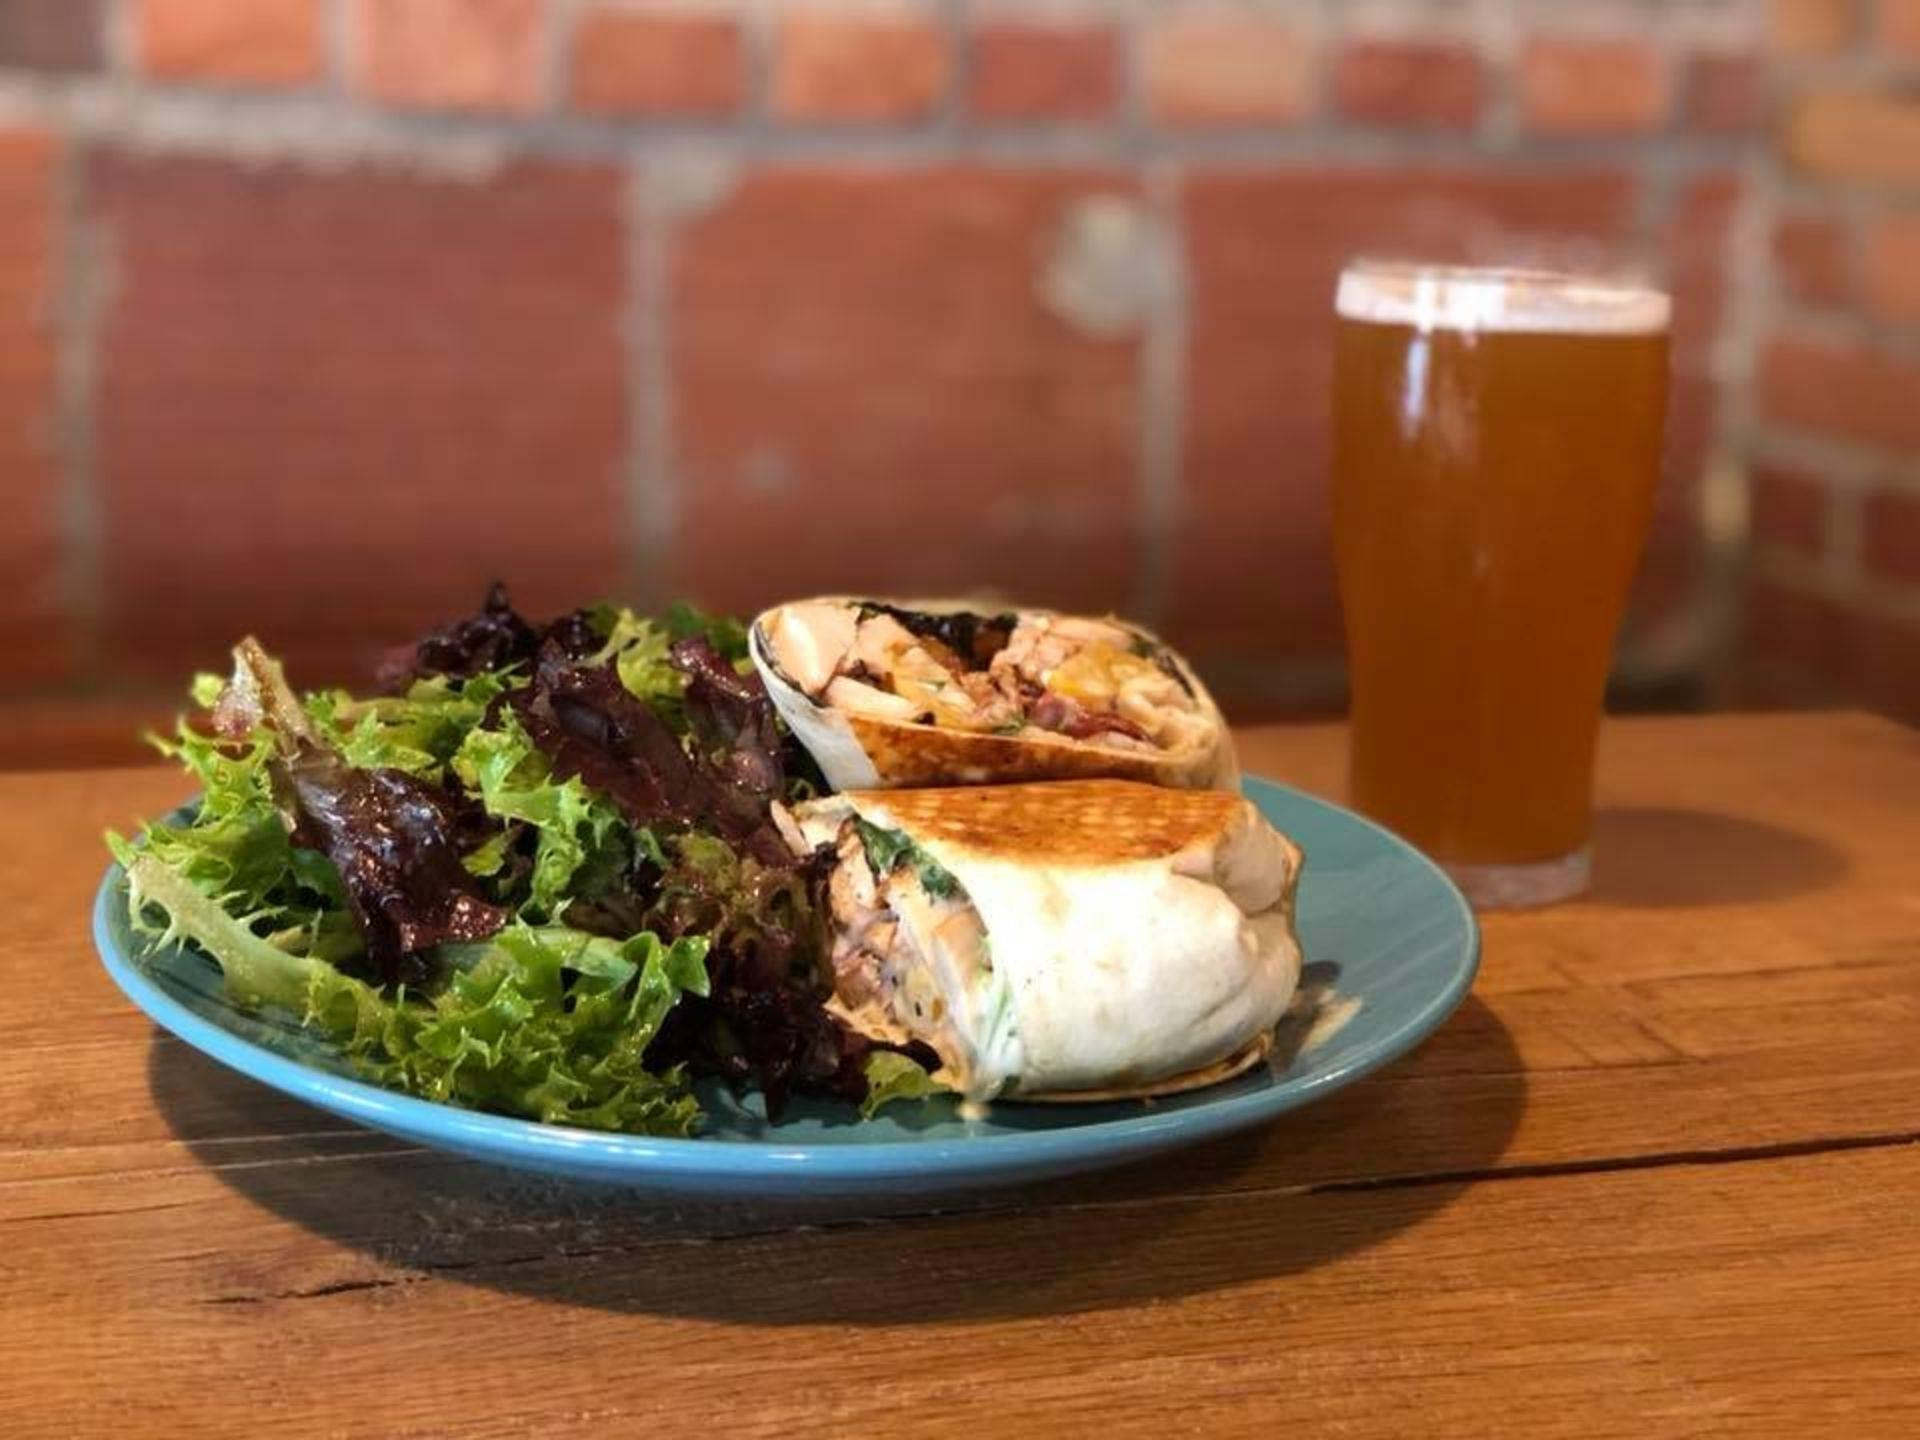 Grilled chicken wrap on a plate with a mixed green salad and a beer